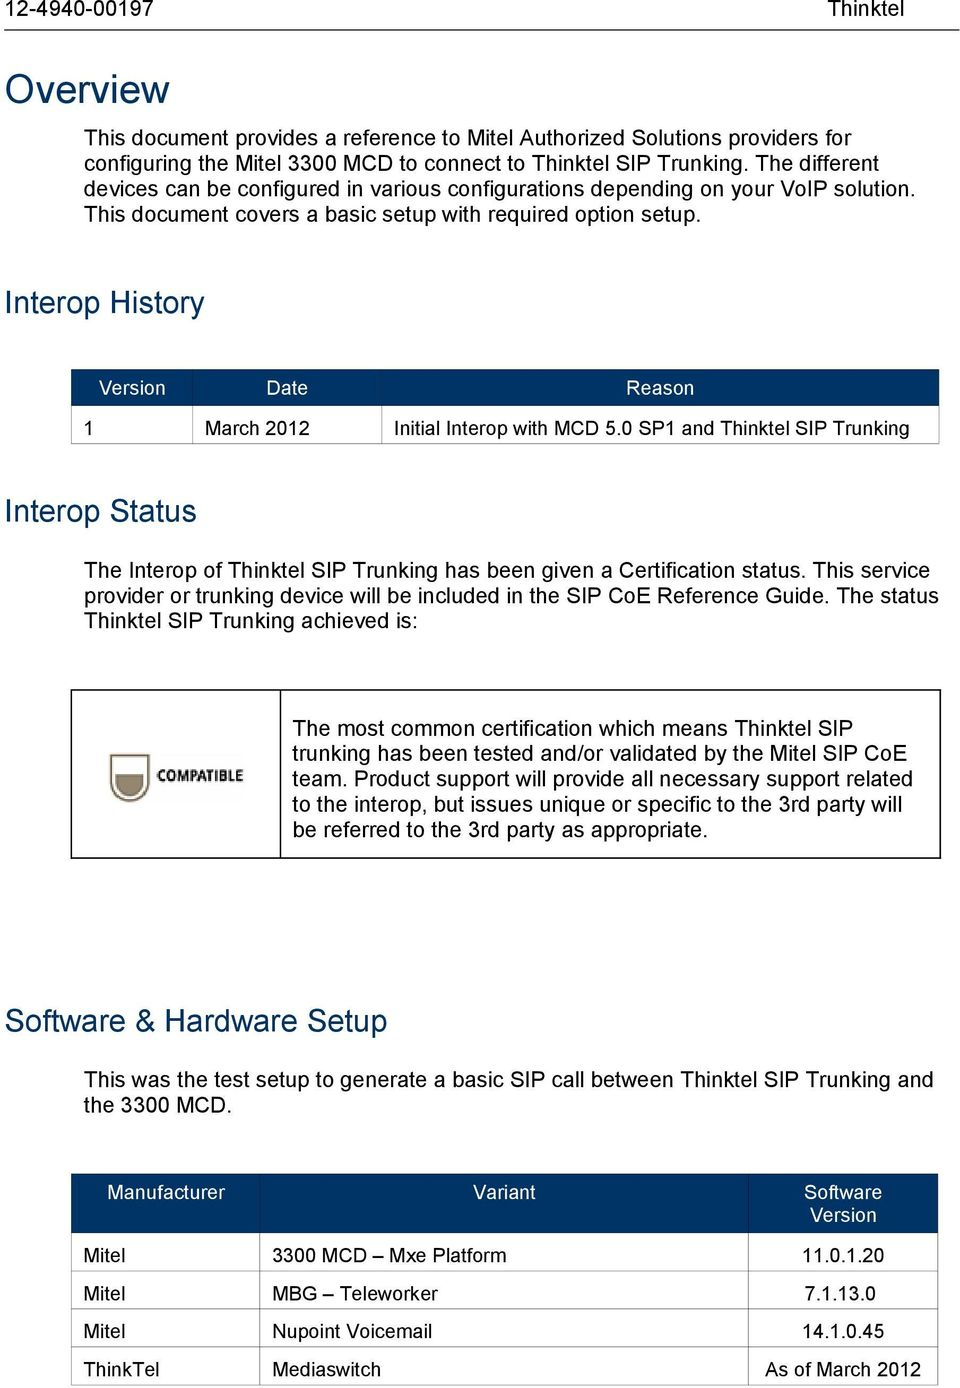 Interop History Version 1 Date March 2012 Reason Initial Interop with MCD 5.0 SP1 and SIP Trunking Interop Status The Interop of SIP Trunking has been given a Certification status.